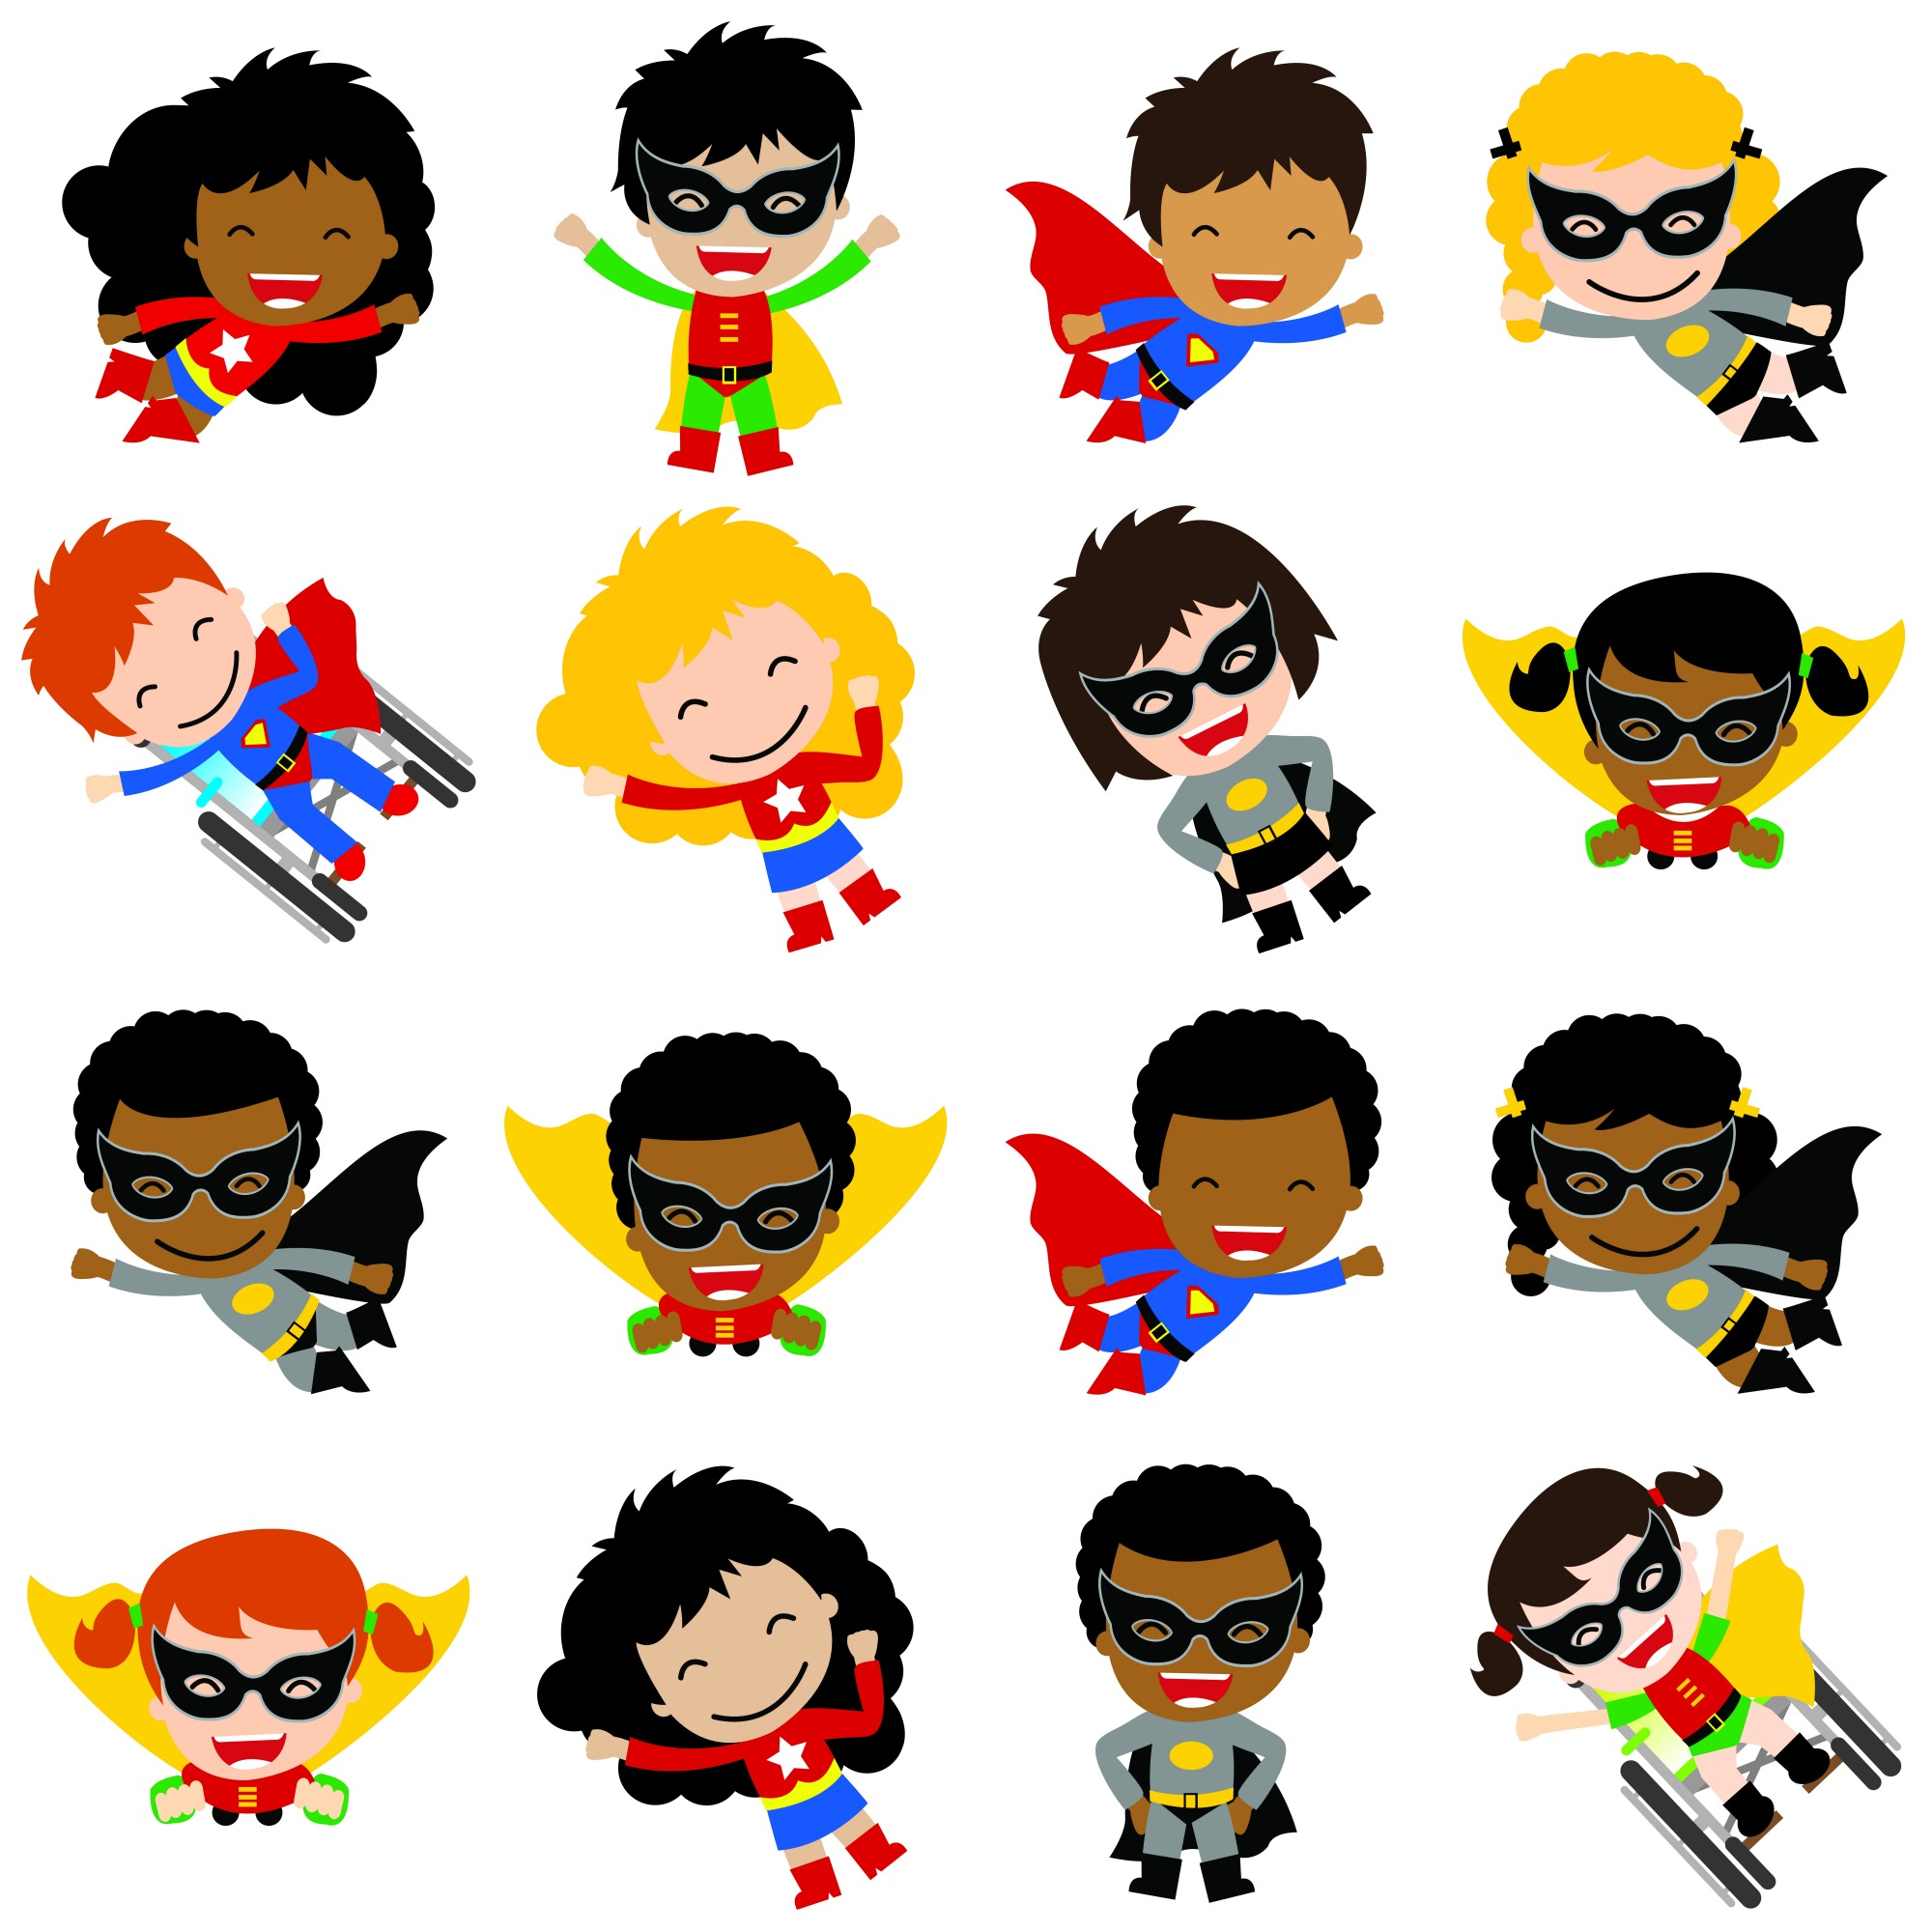 Multicultural Superhero Cutouts